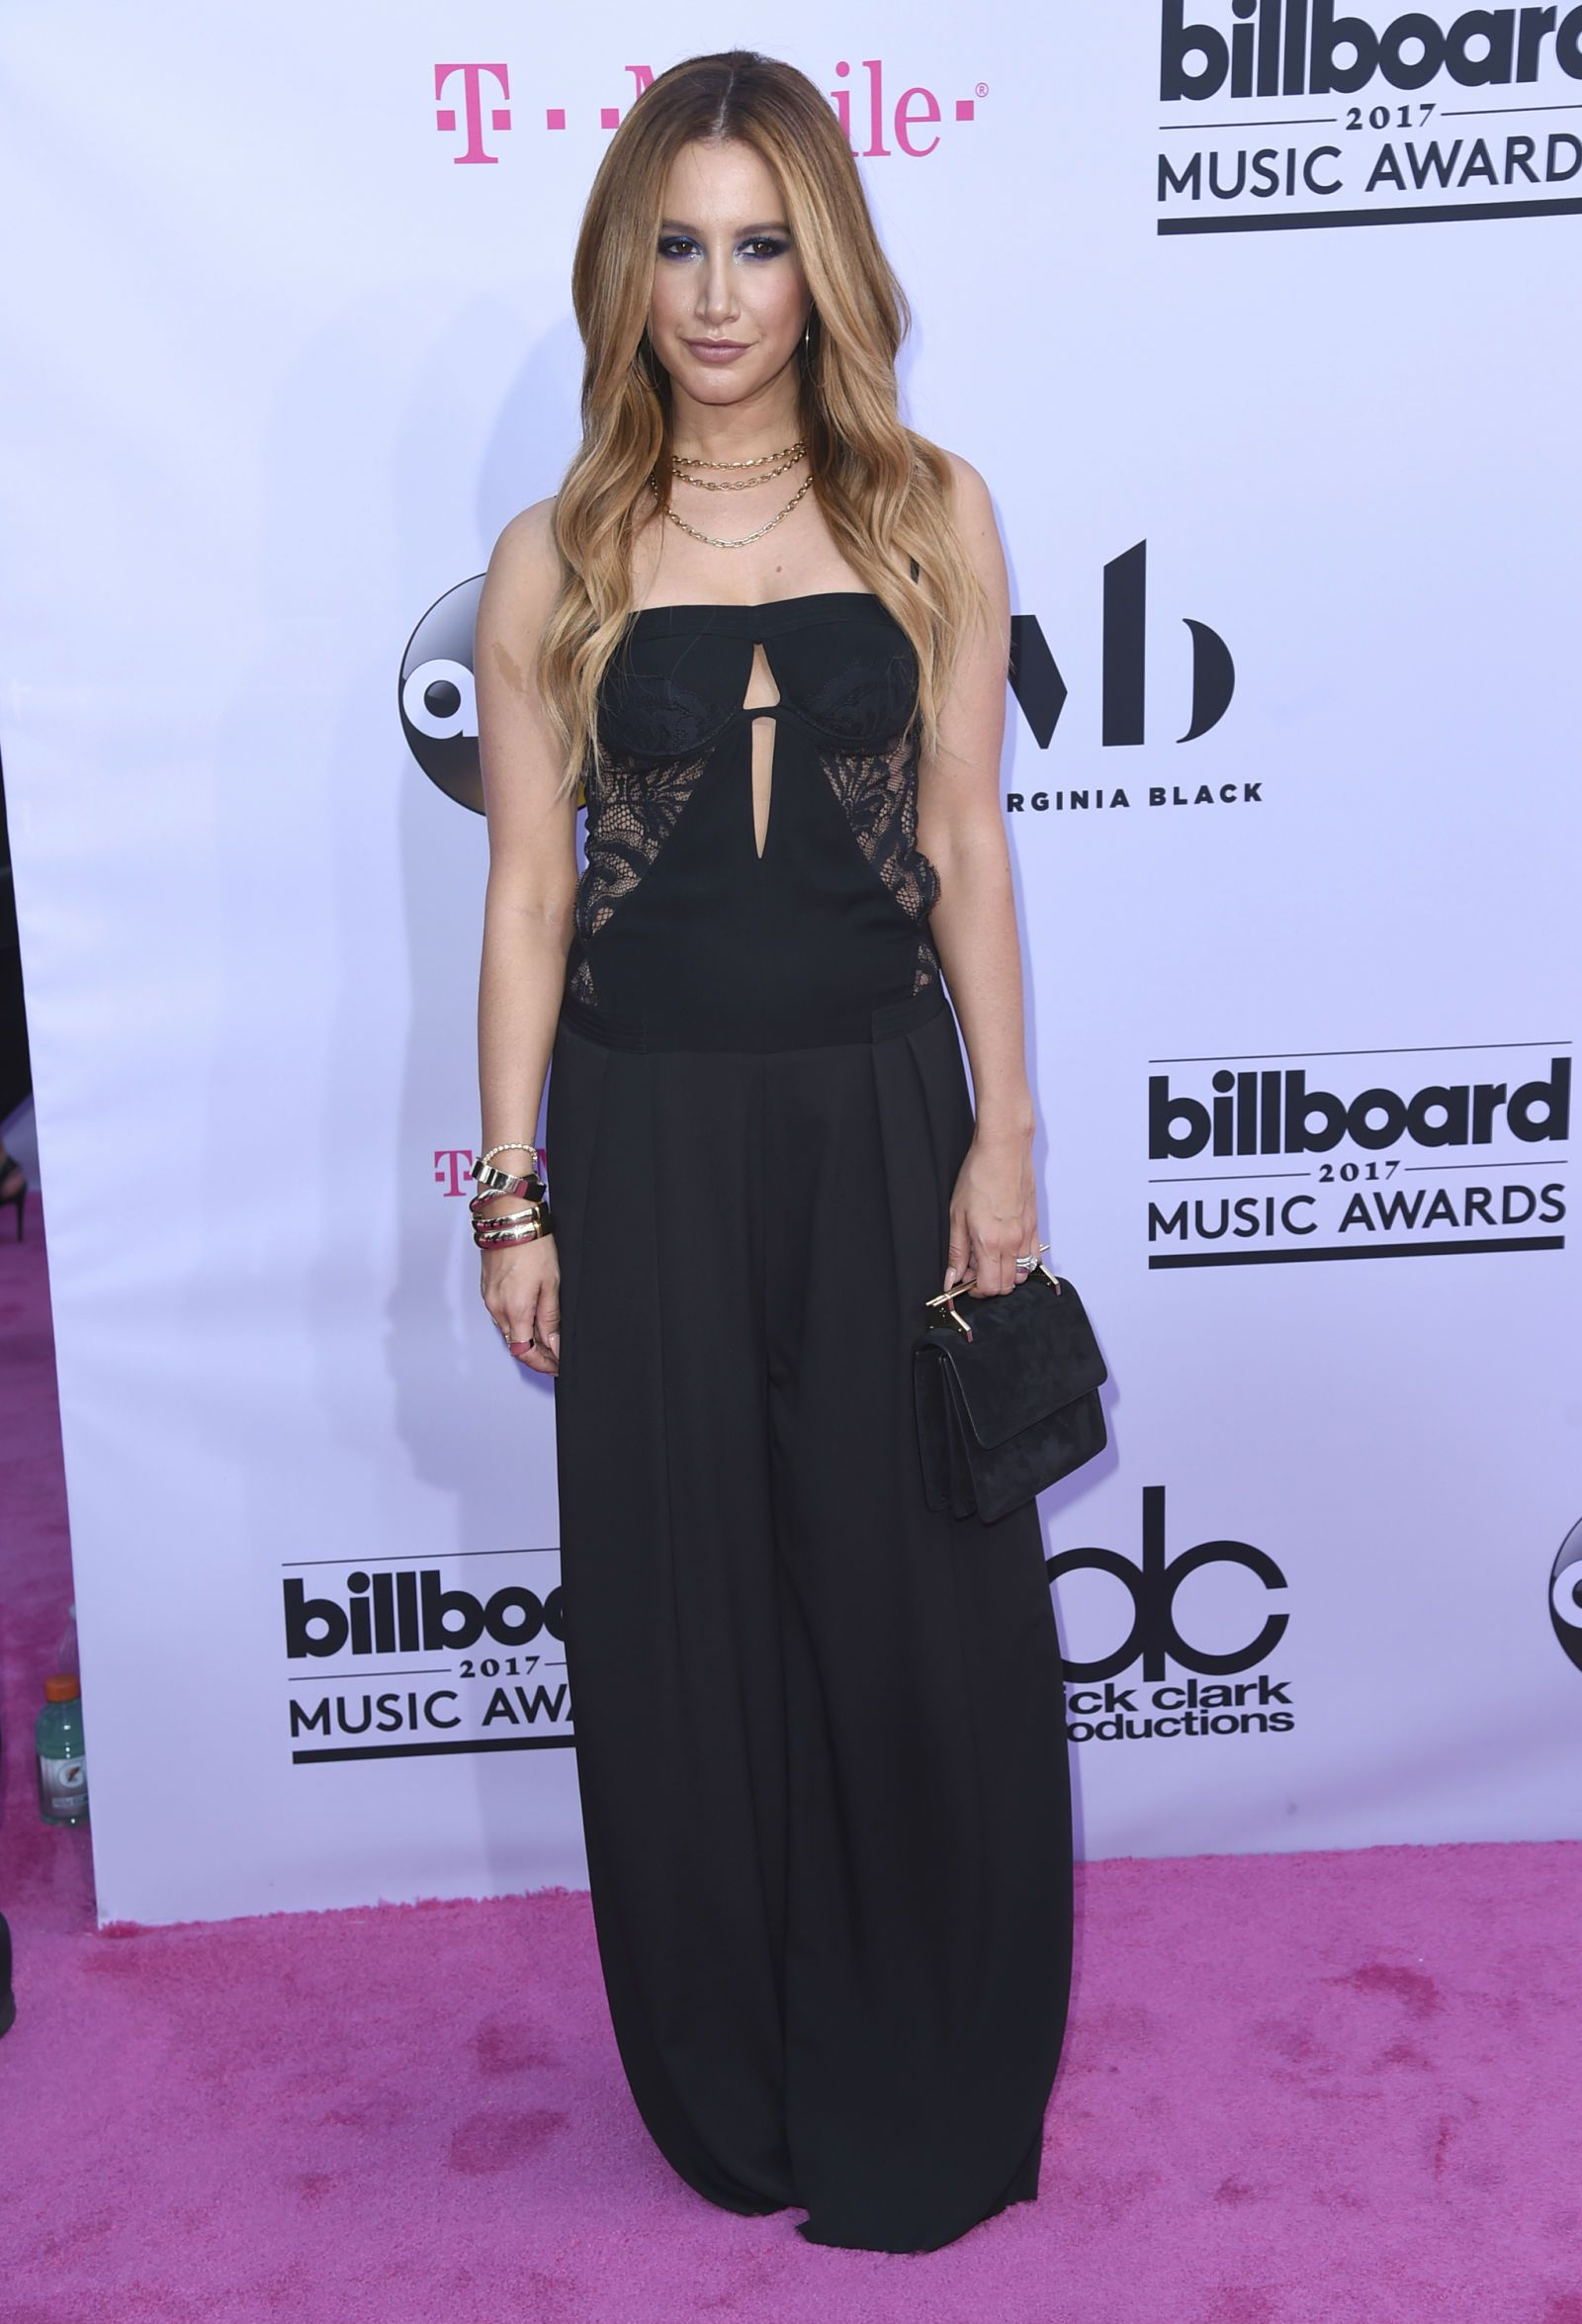 Billboard music awards ashley tisdale and red carpet